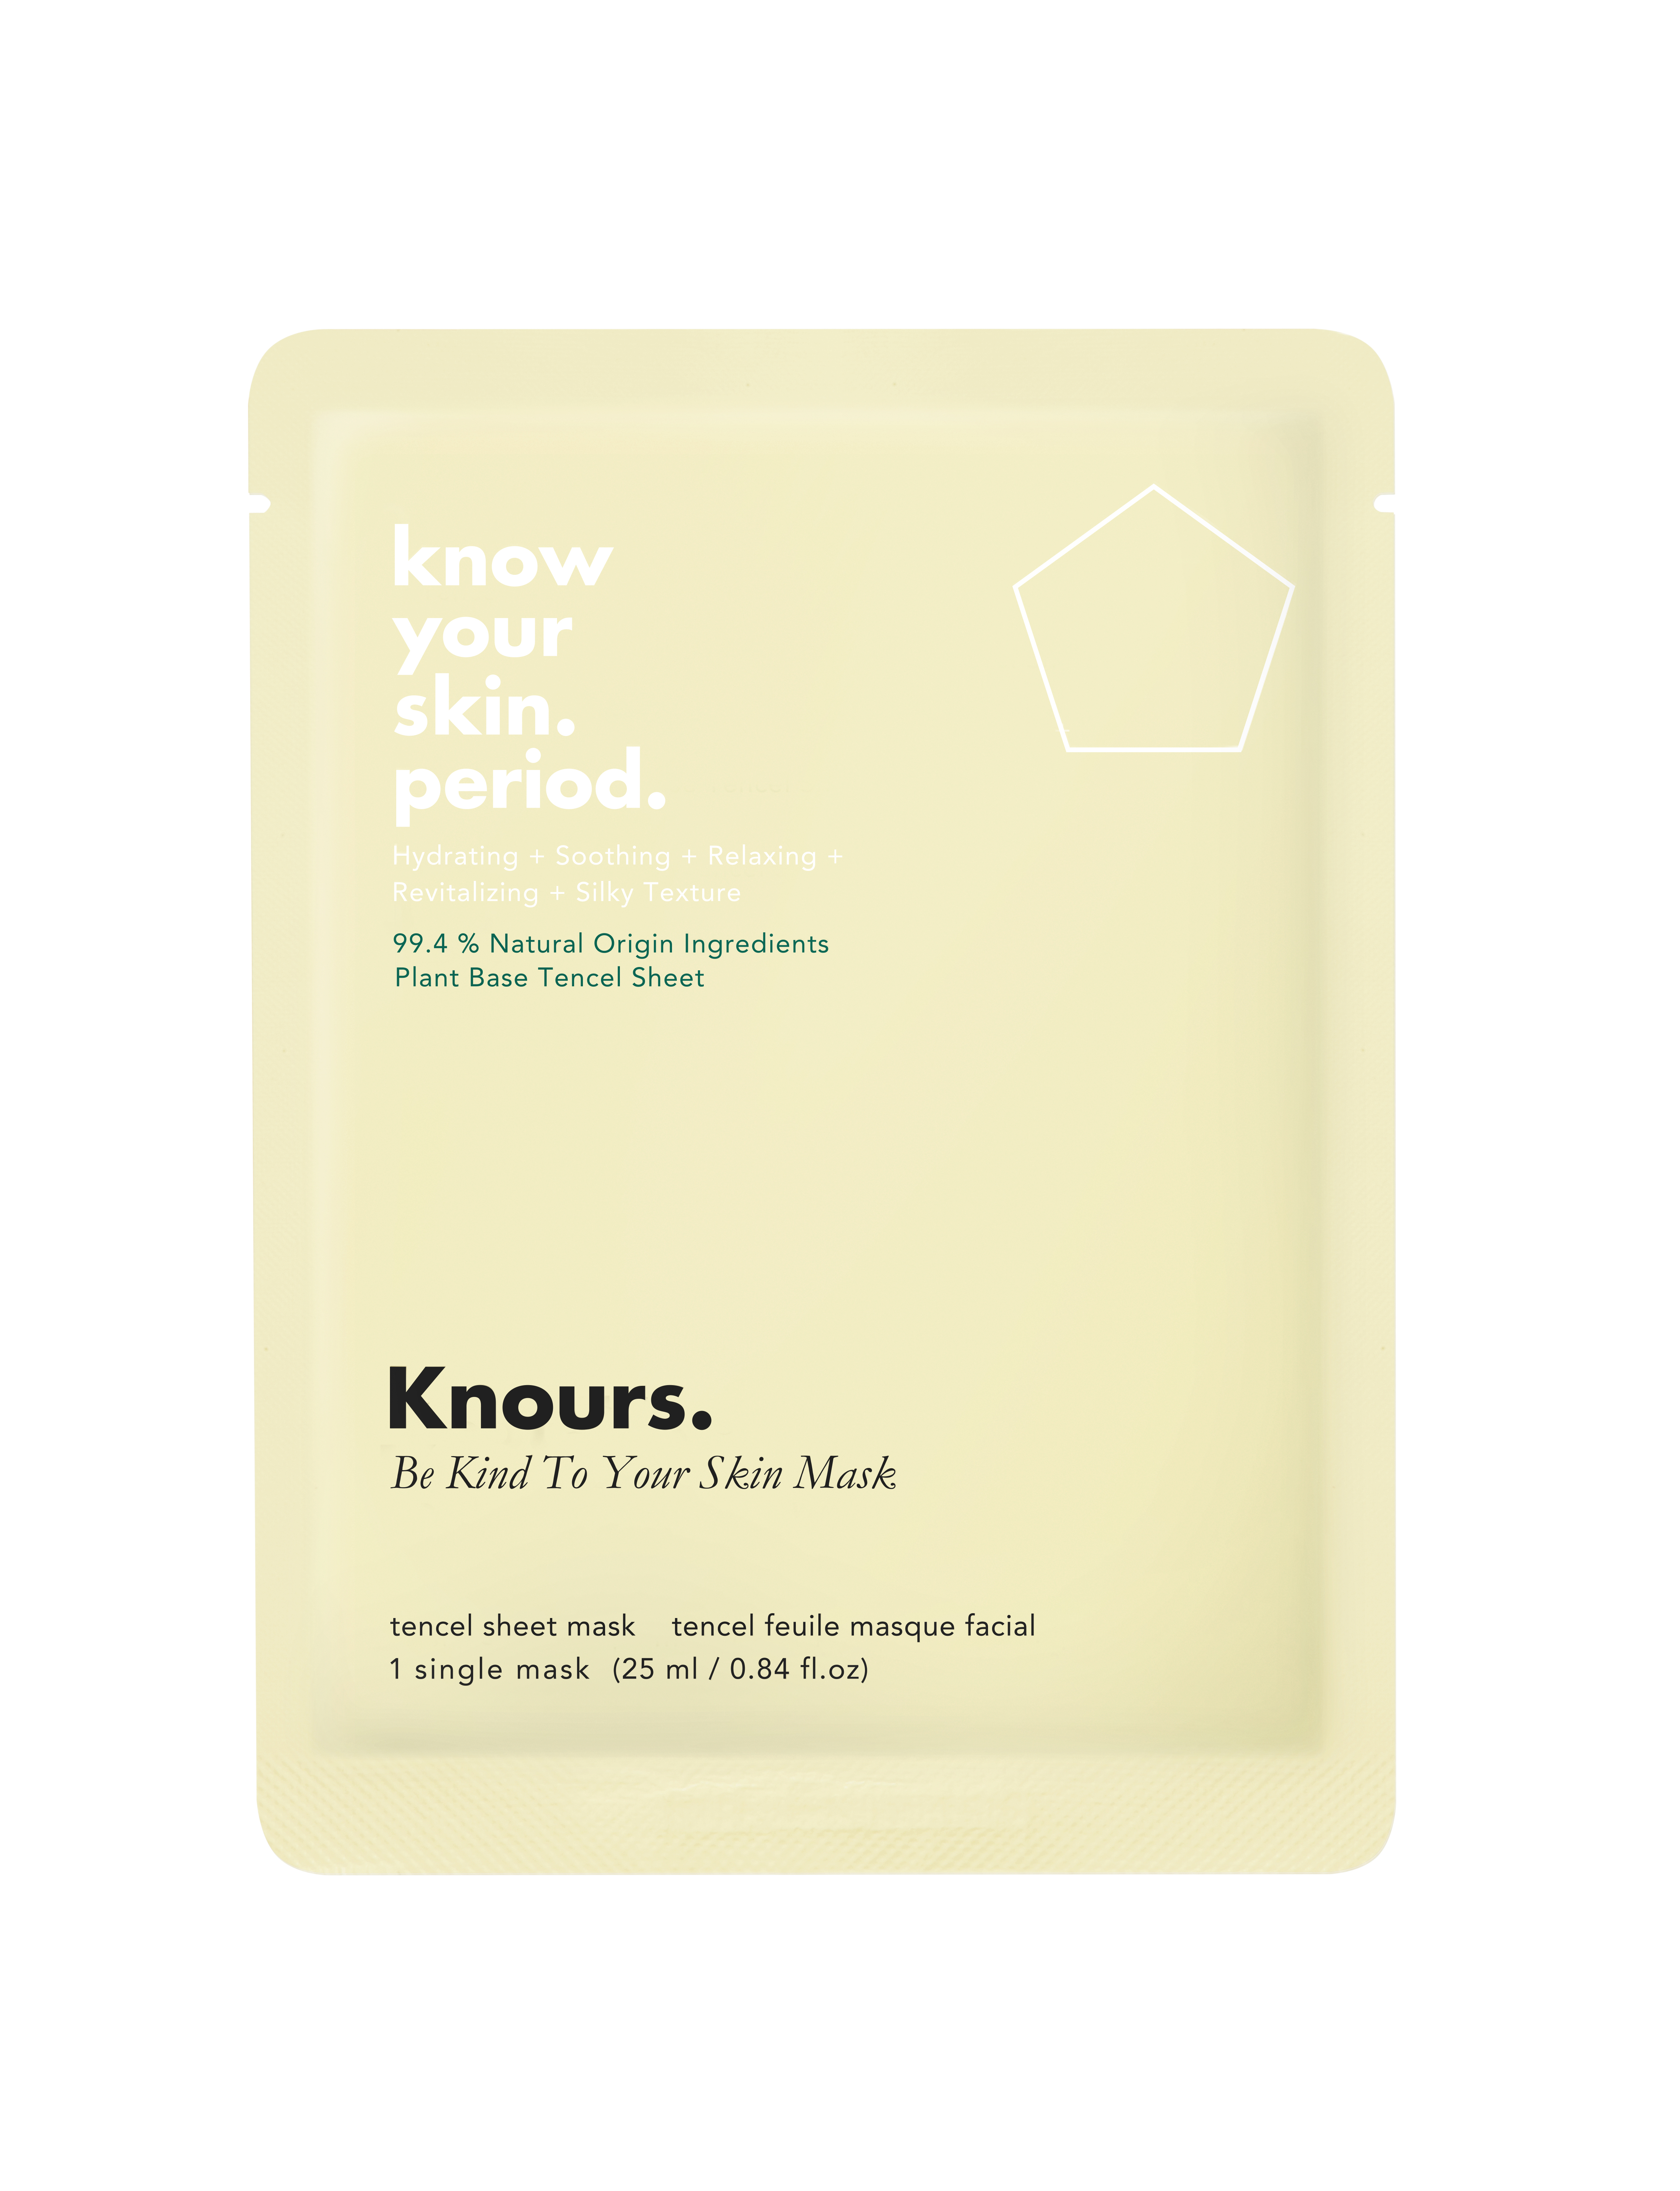 Knours Skin Care Launches Sheet Mask Targeting Period Skin